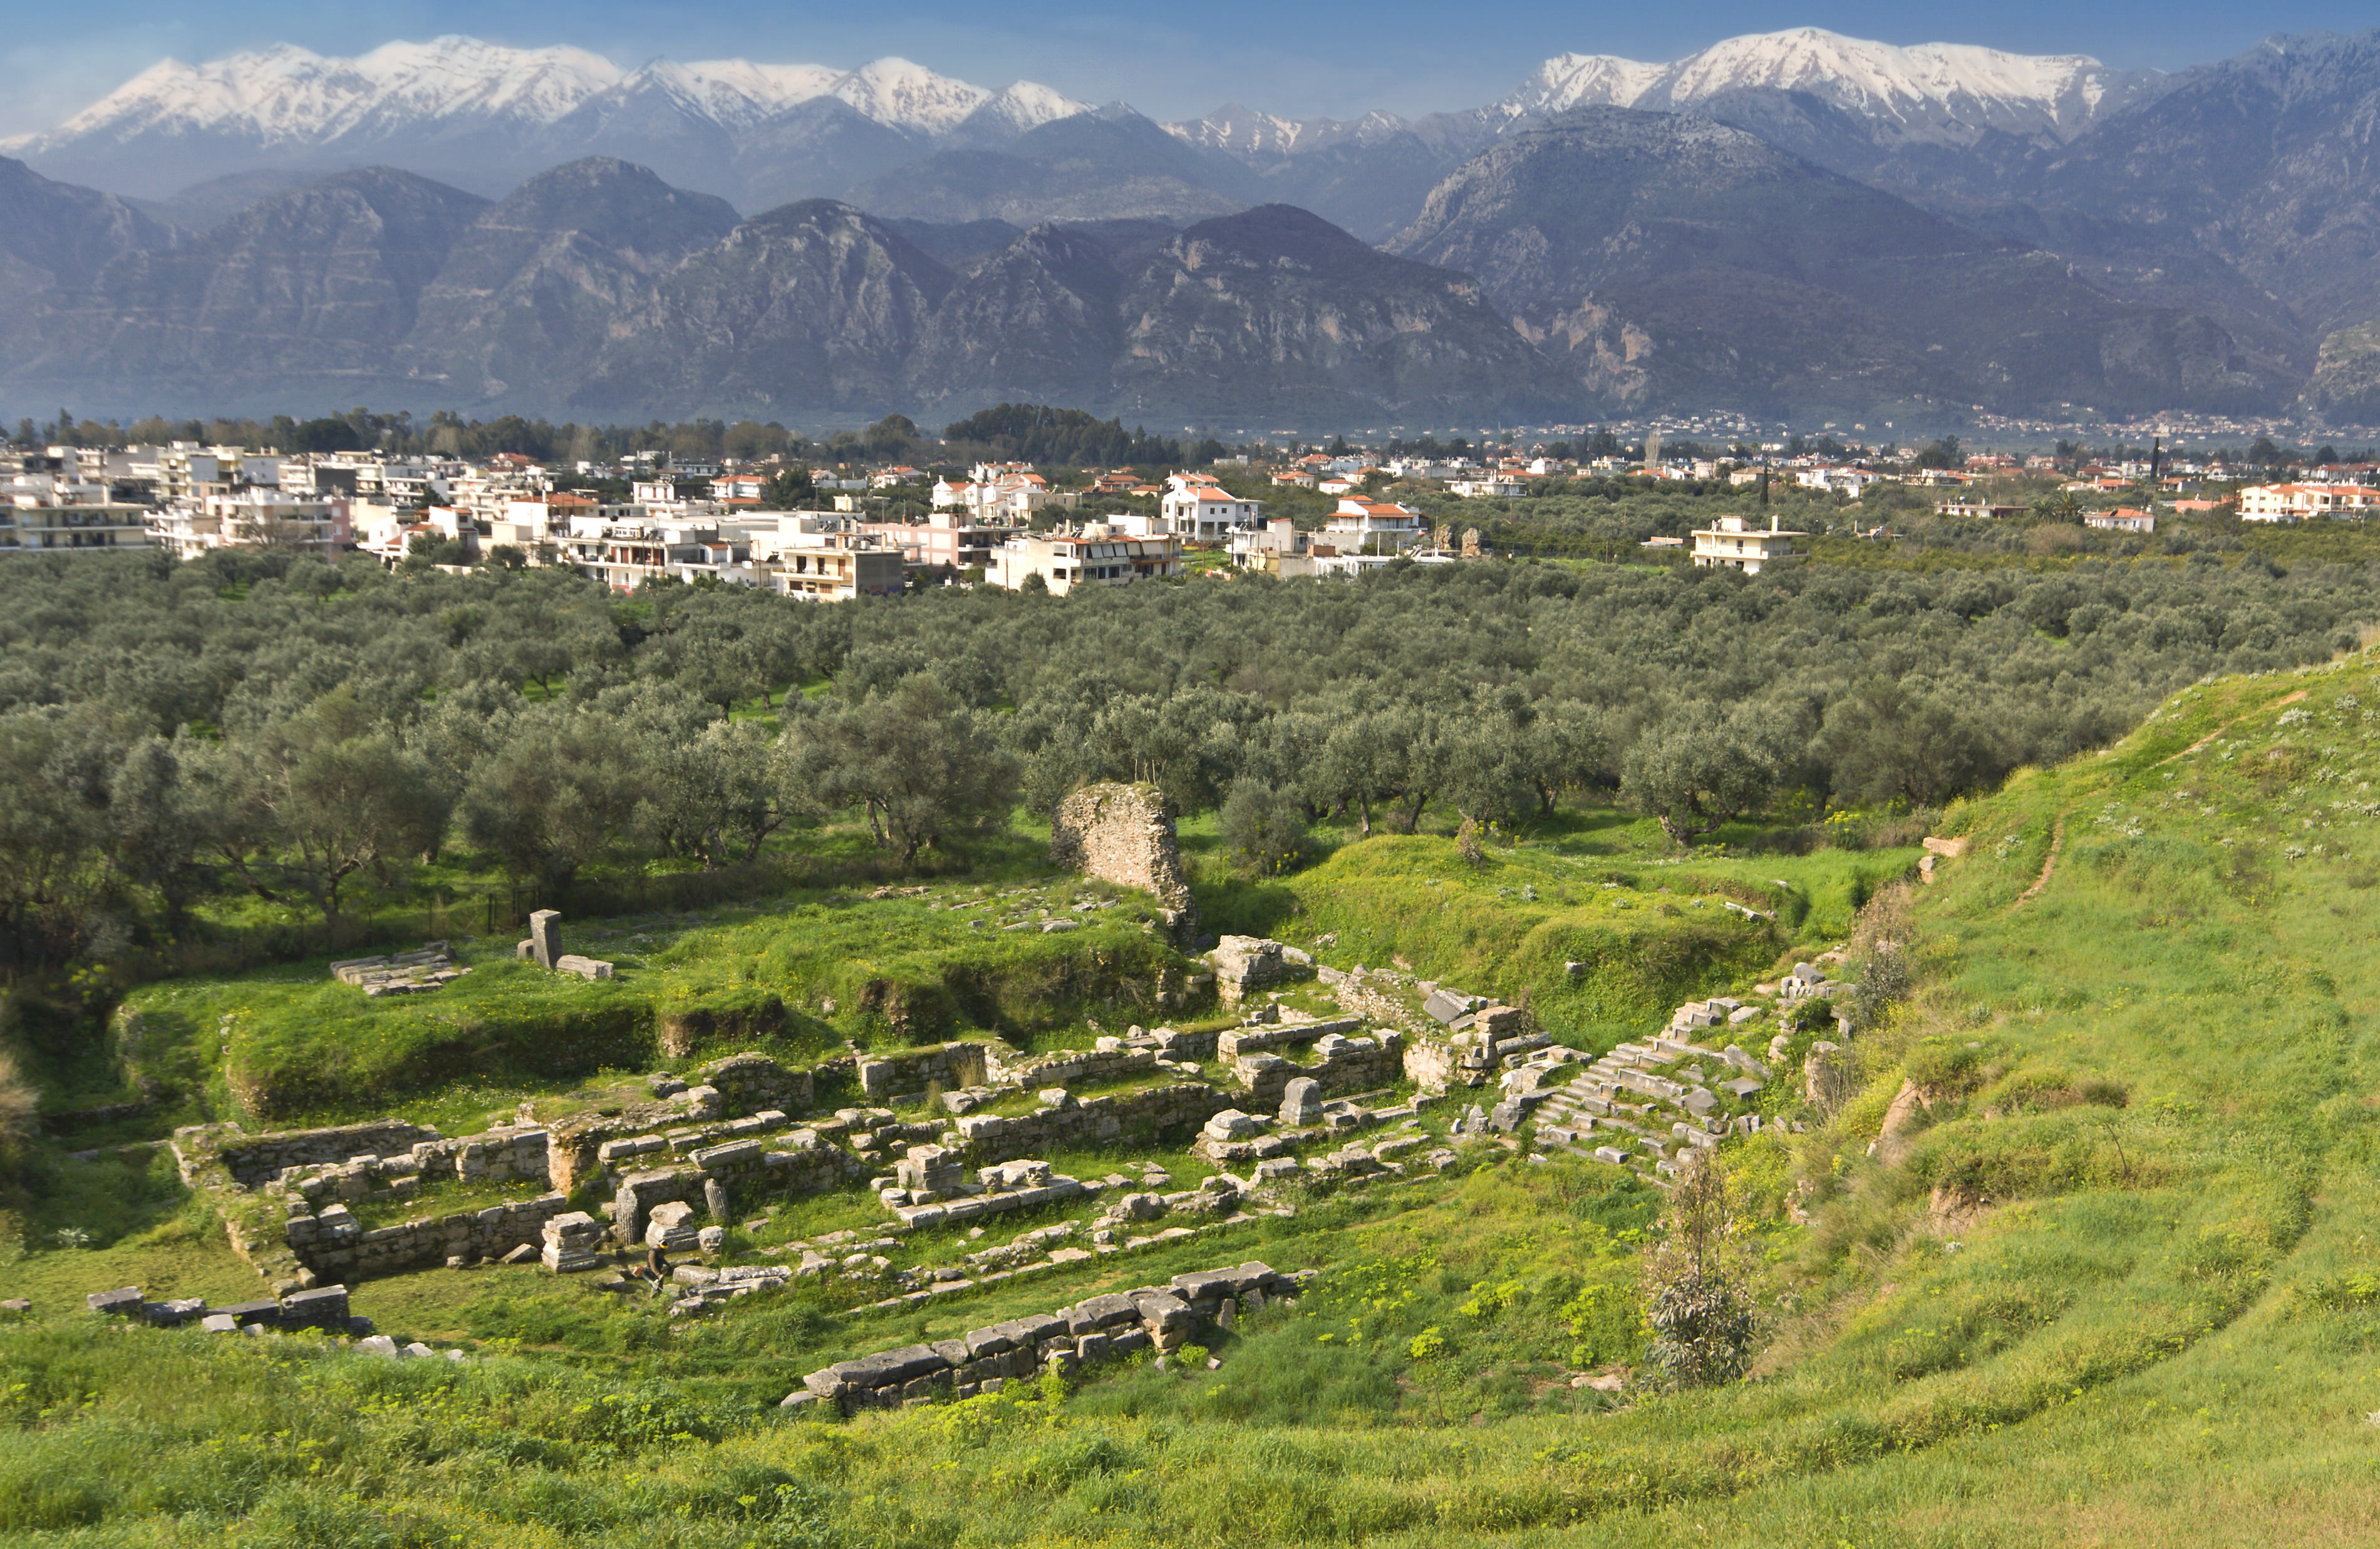 Ancient and modern Sparta historical city in Greece. Mothercity of King Leonidas.of the 300 soldiers fought at Thermopylae against the Persians